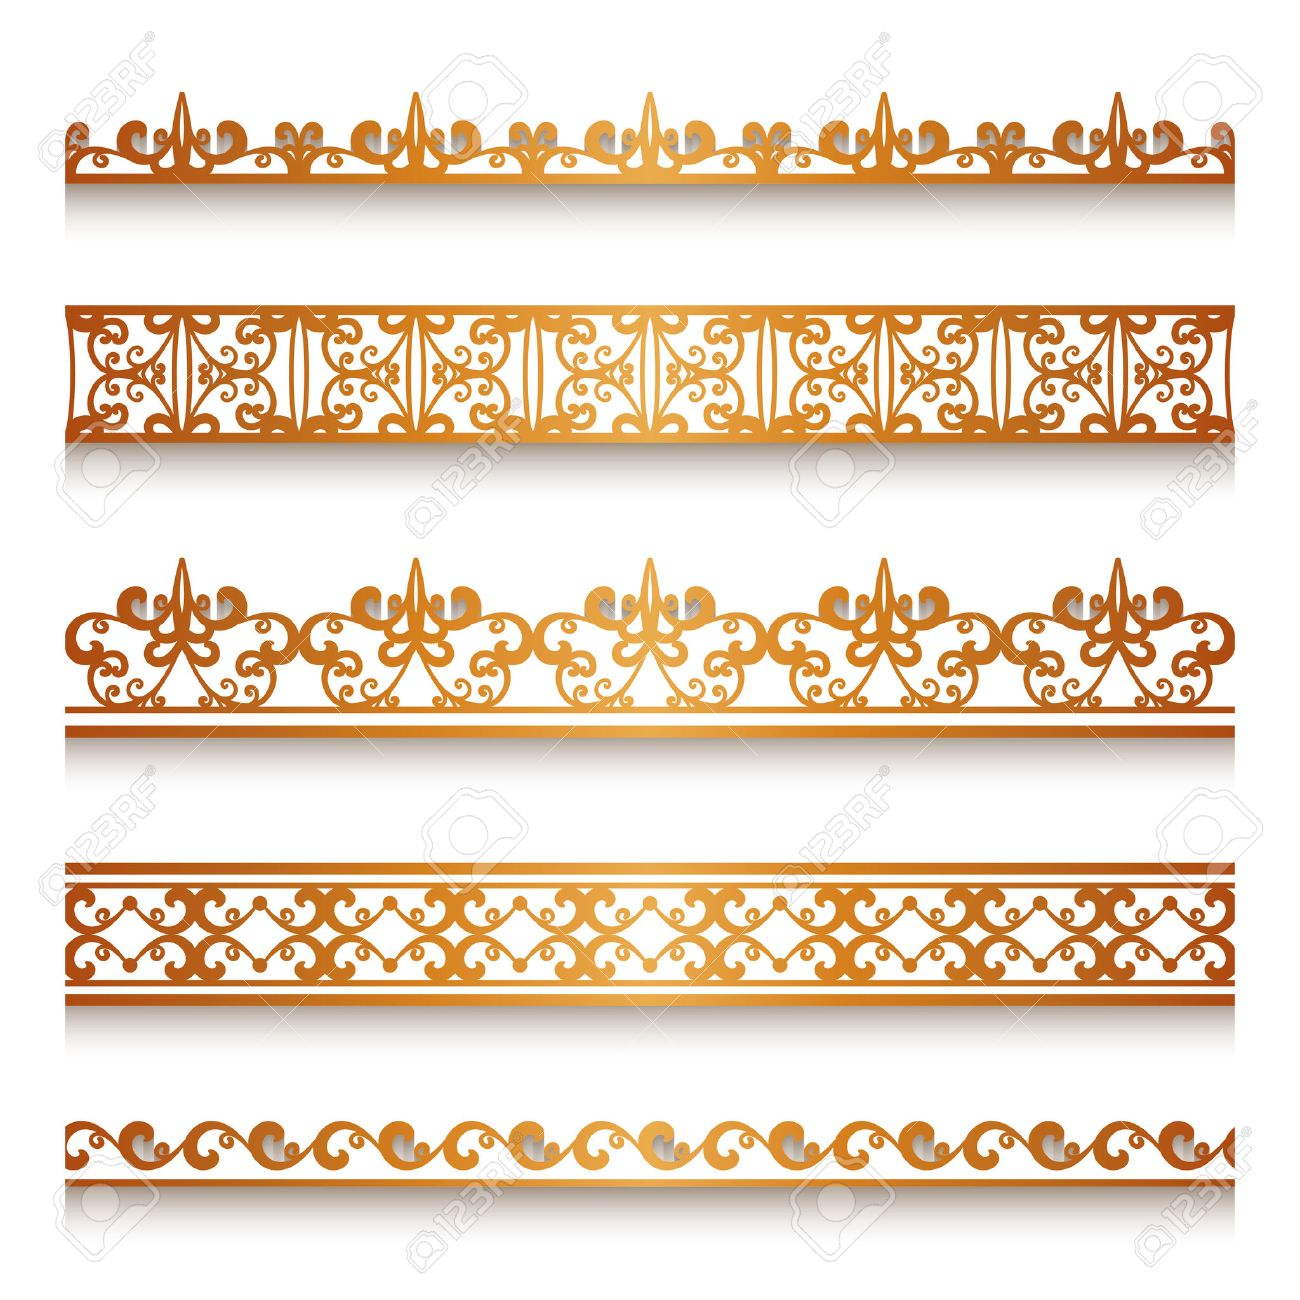 Gold Line Borders Free Wiring Diagrams Cell Led Flashlight Circuit Diagram Projects Nonstopfree Set Of Vintage Ornamental Lace Ribbons Decorative Rh 123rf Com Red